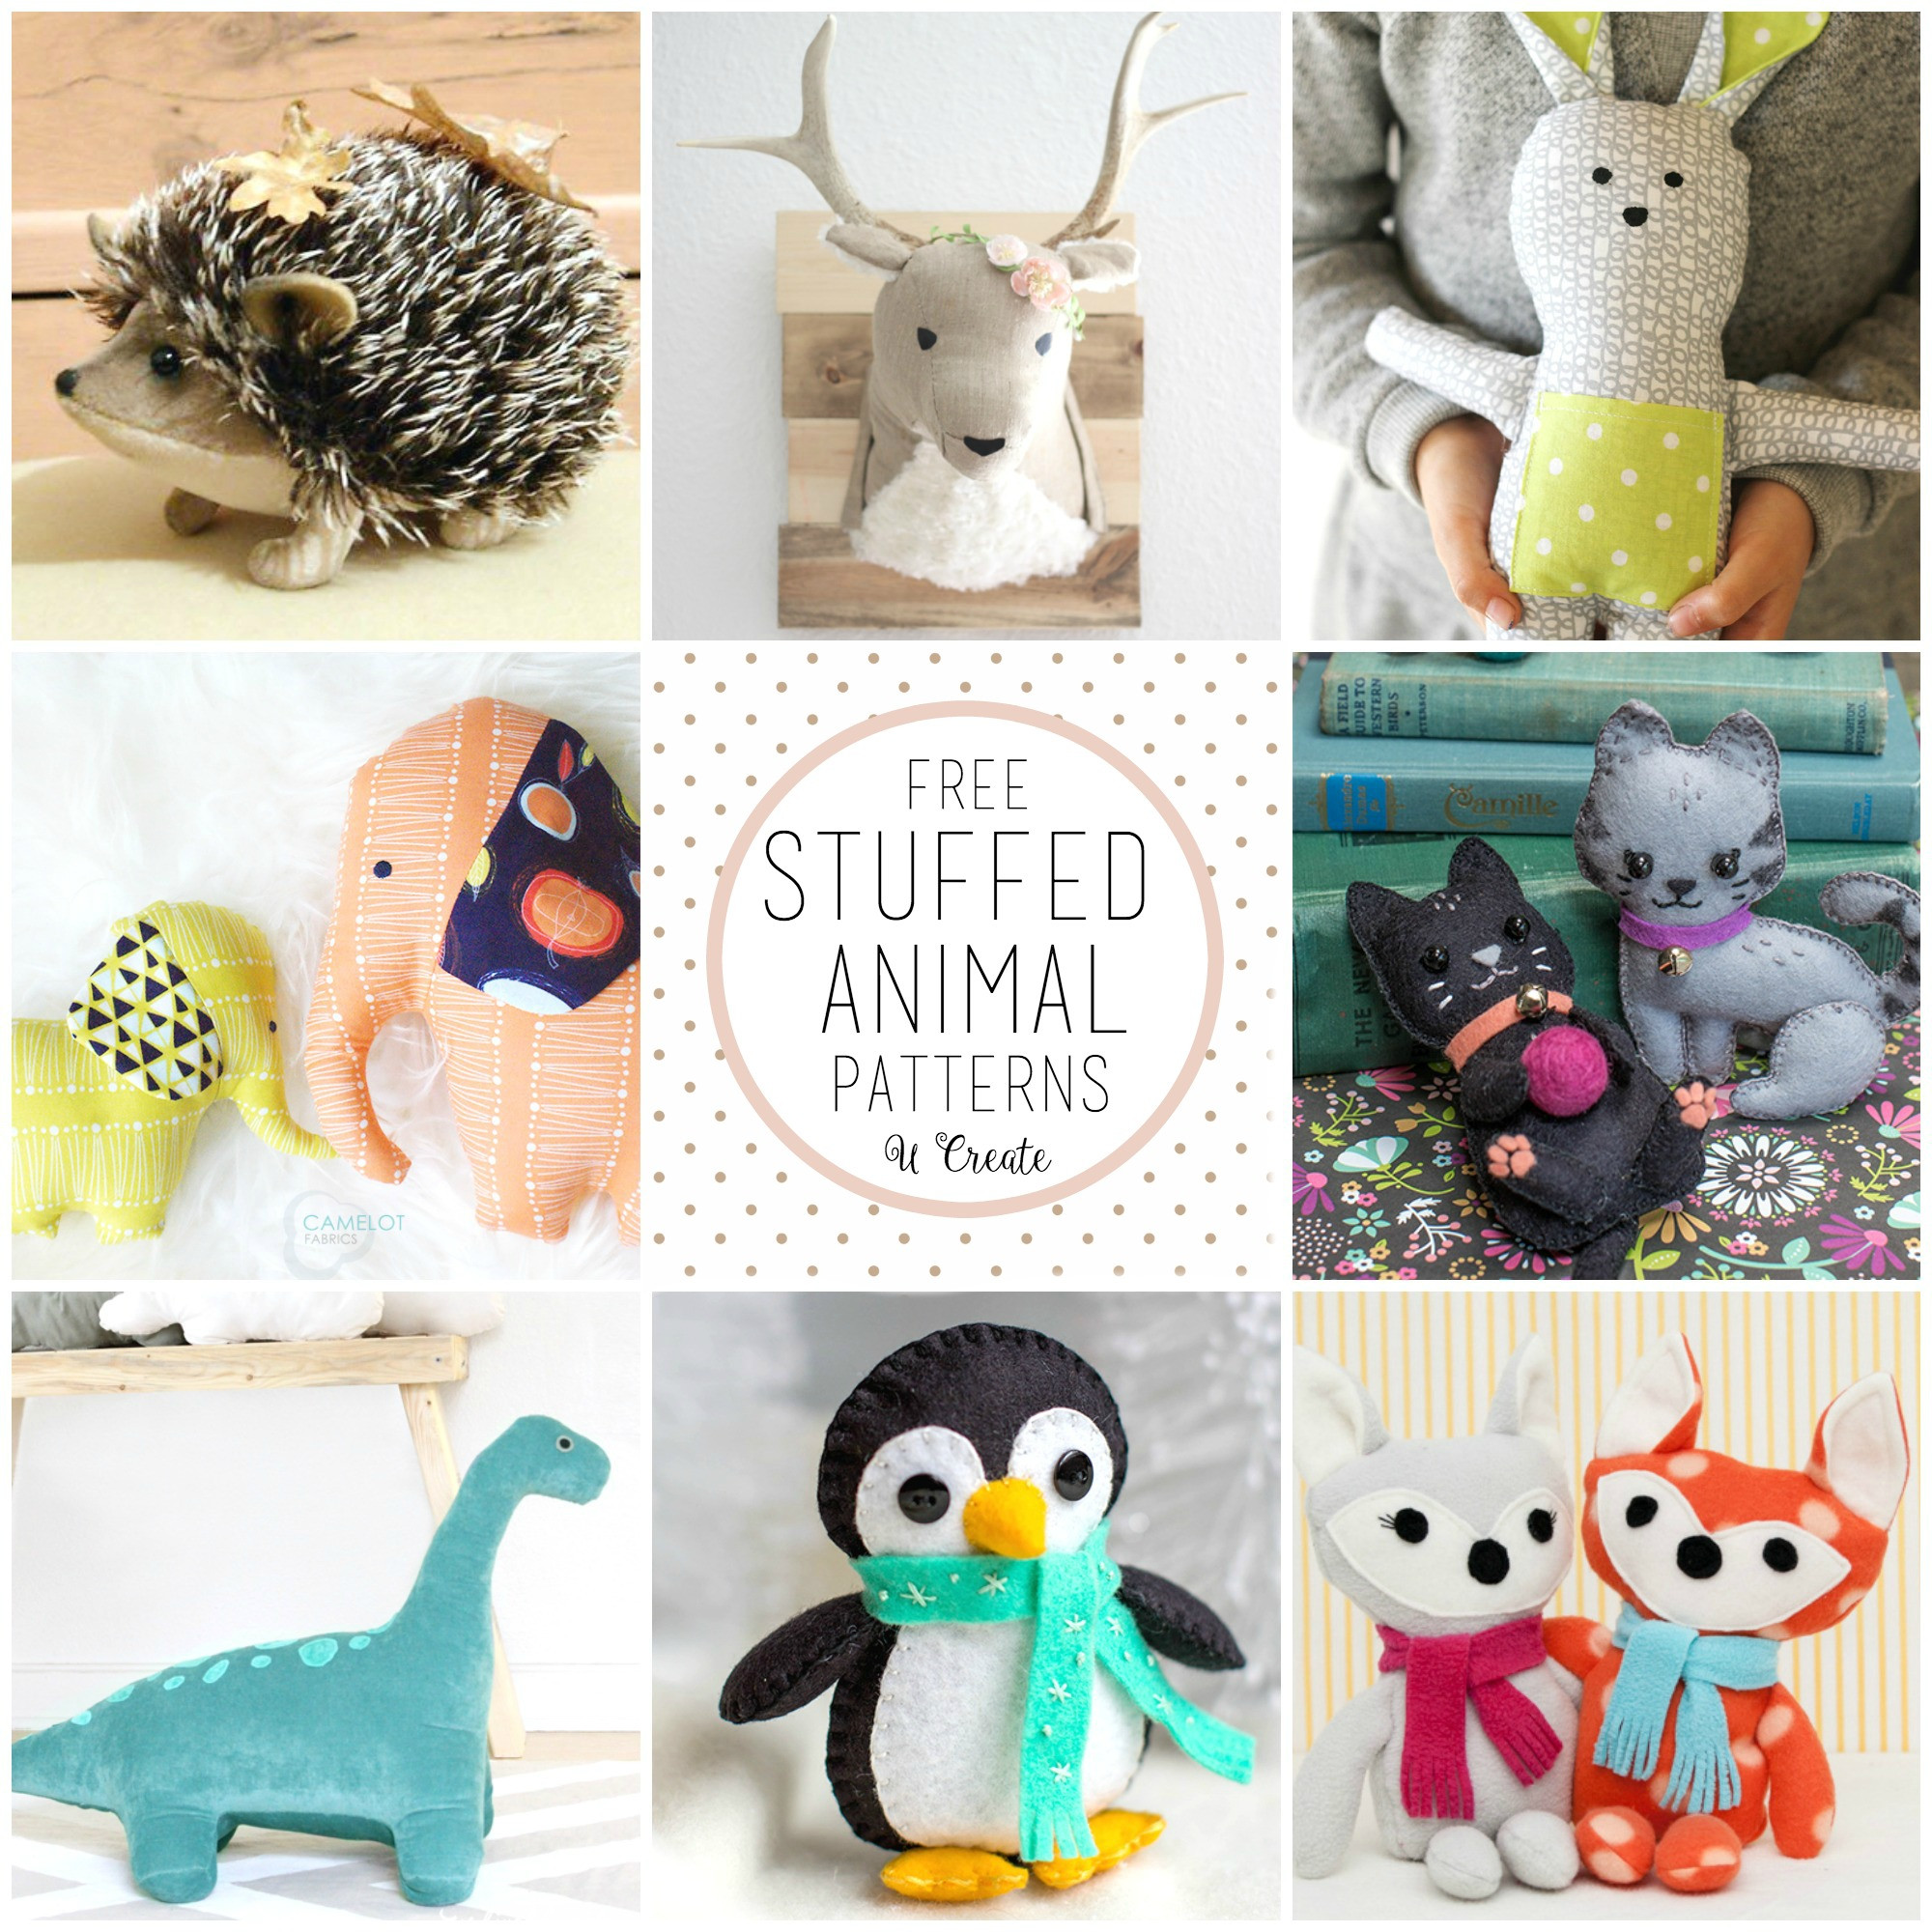 Best ideas about DIY Stuffed Animal . Save or Pin Free Stuffed Animal Patterns the cutest U Create Now.